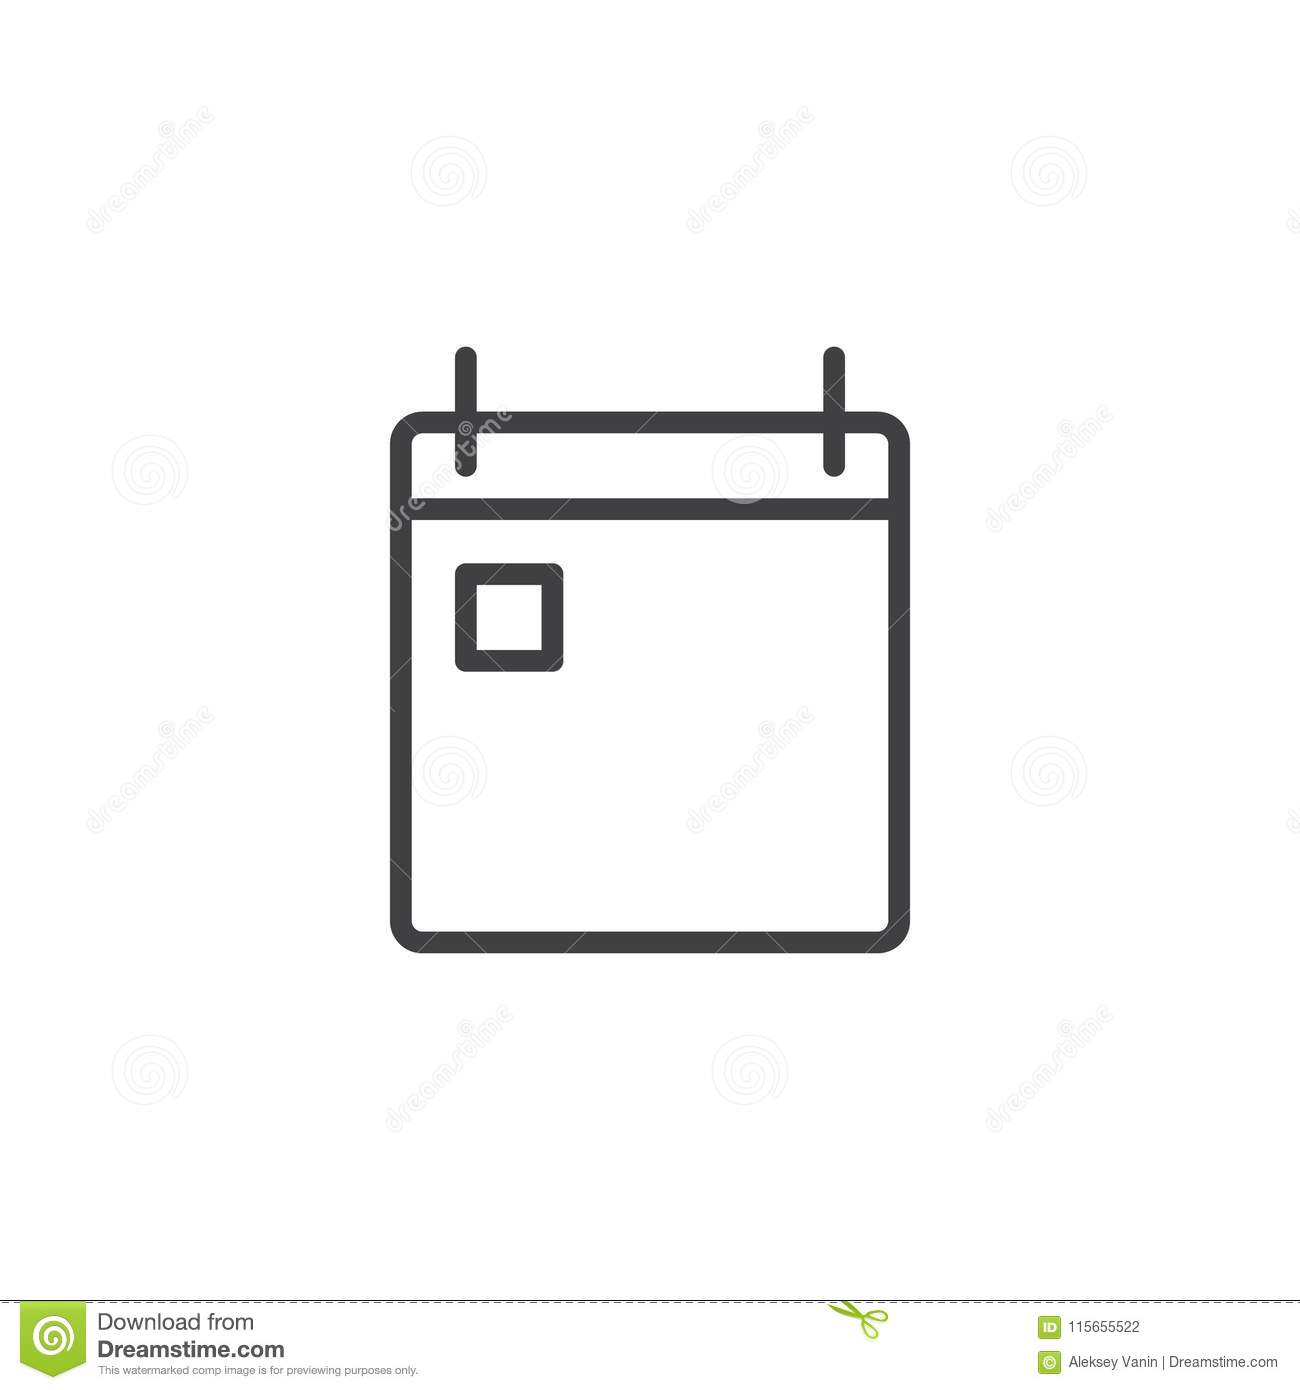 calendar outline icon stock vector illustration of office 115655522